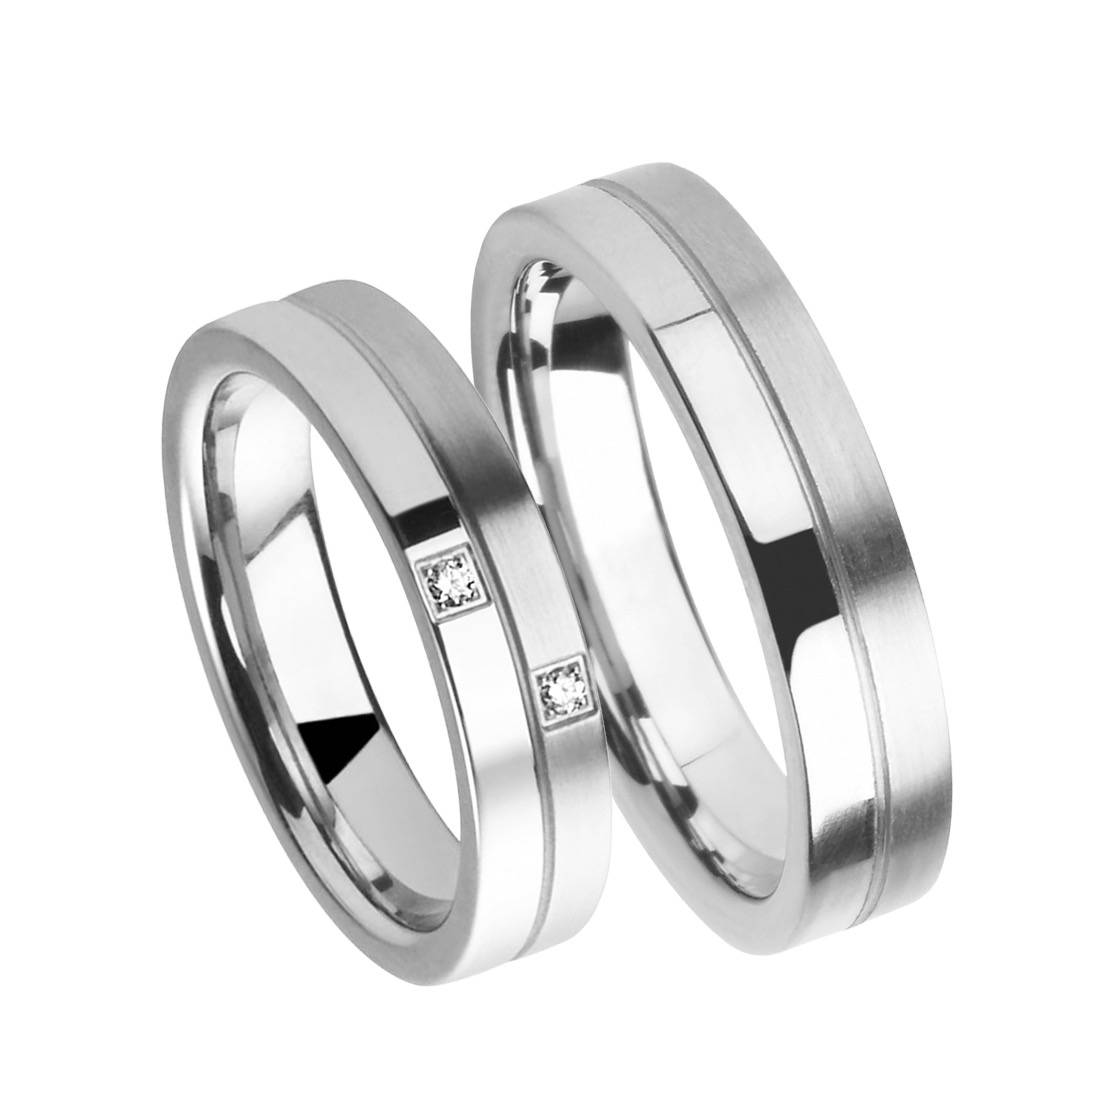 Juwelier Jan Maes - Trouwringen - Verlovingsringen - Juwelen - House of Weddings - 4